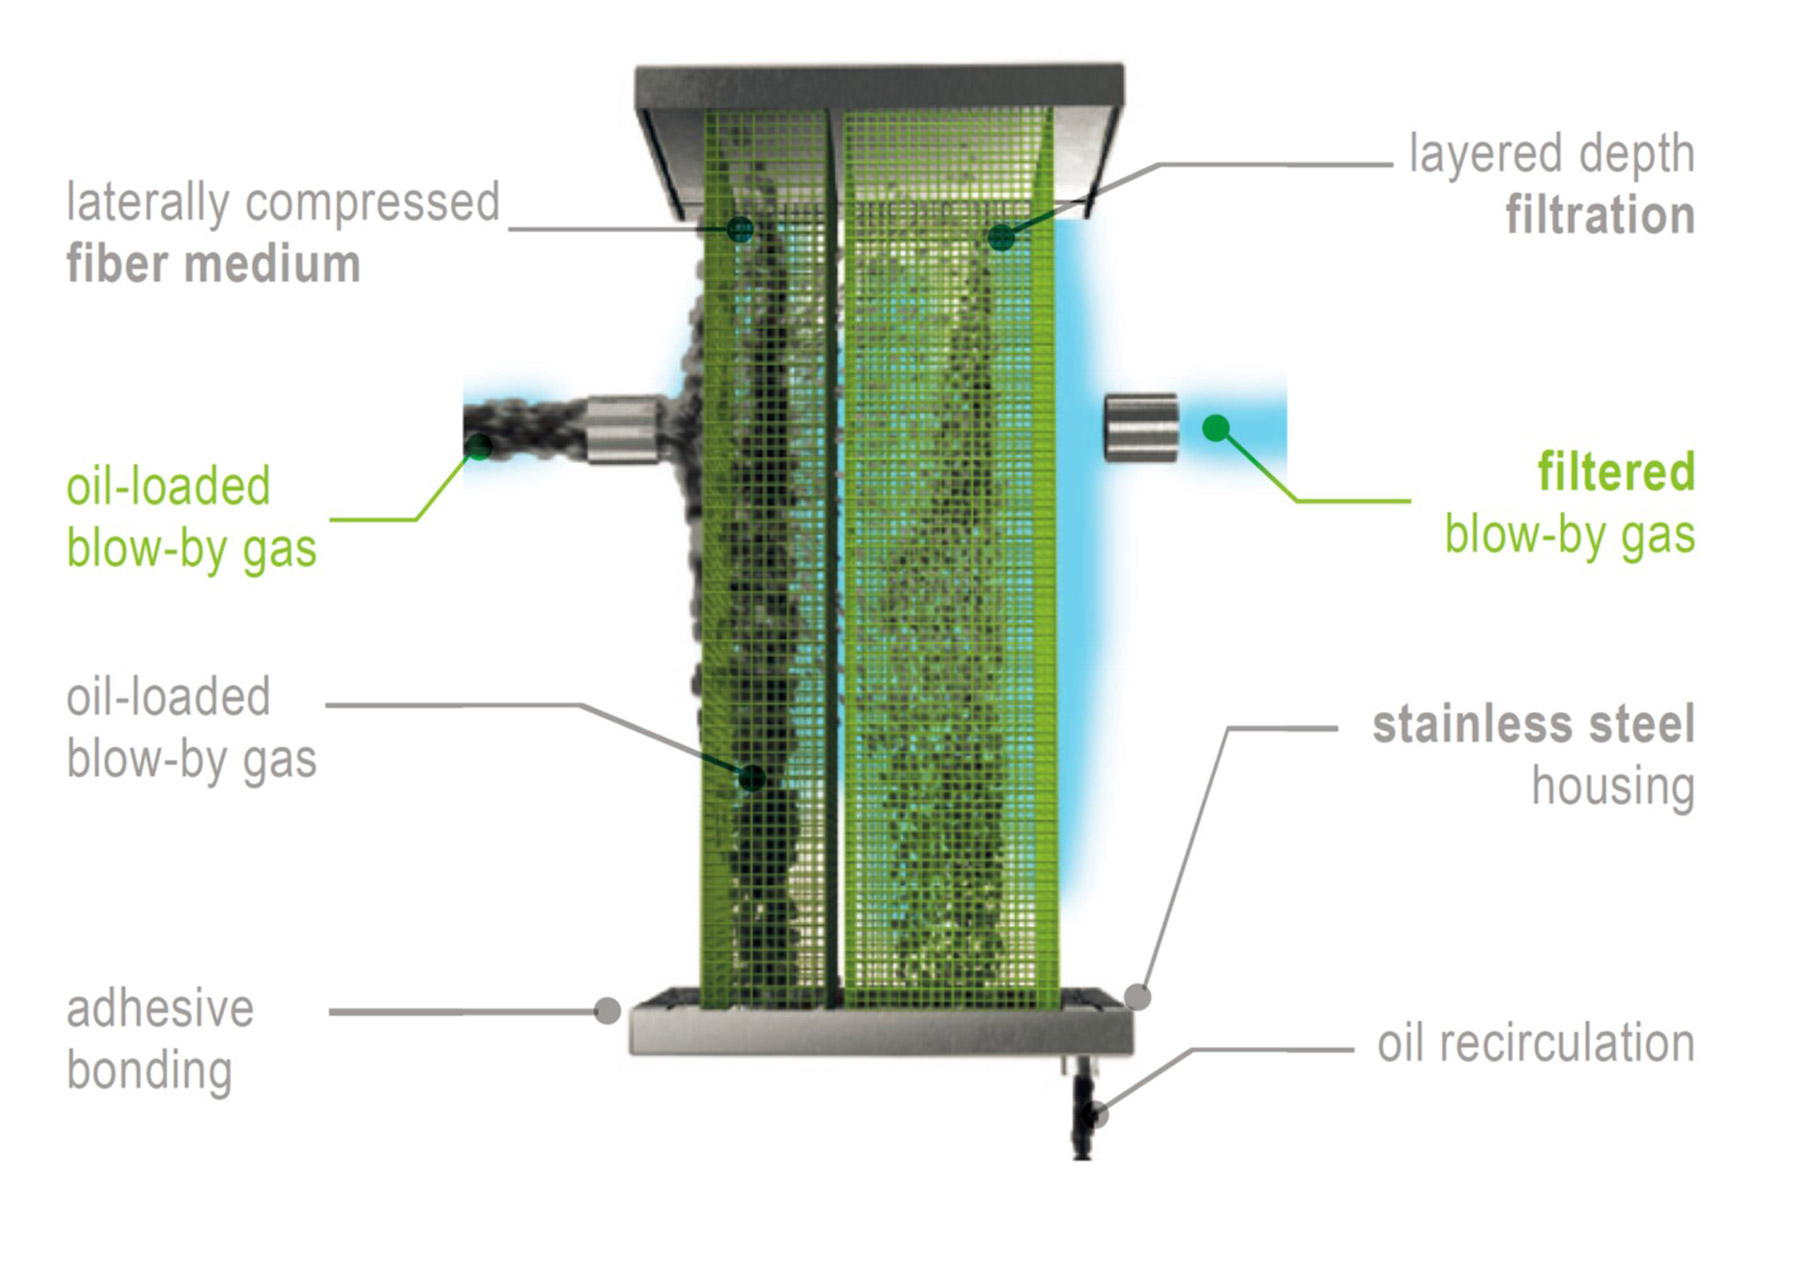 Schematic diagram of the filter technology